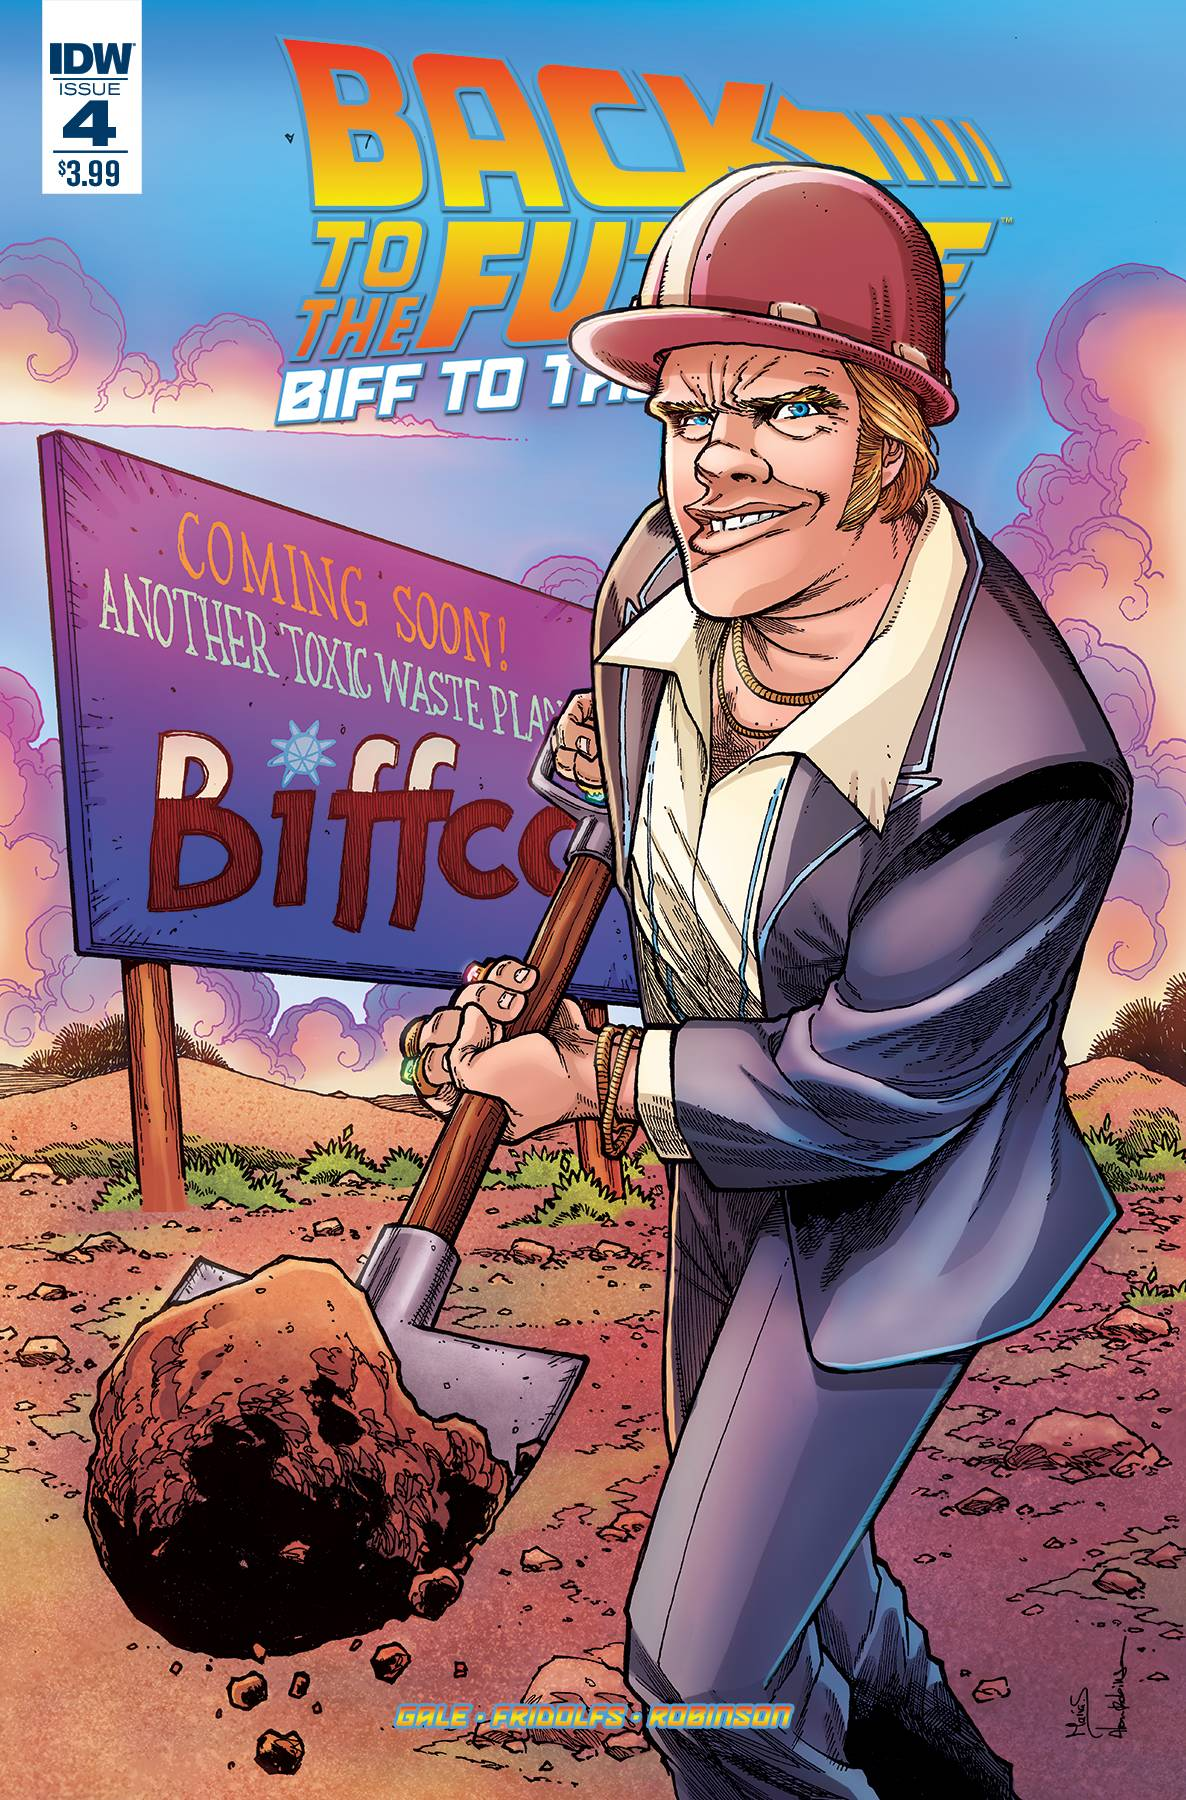 BACK TO THE FUTURE BIFF TO THE FUTURE 4 of 6.jpg